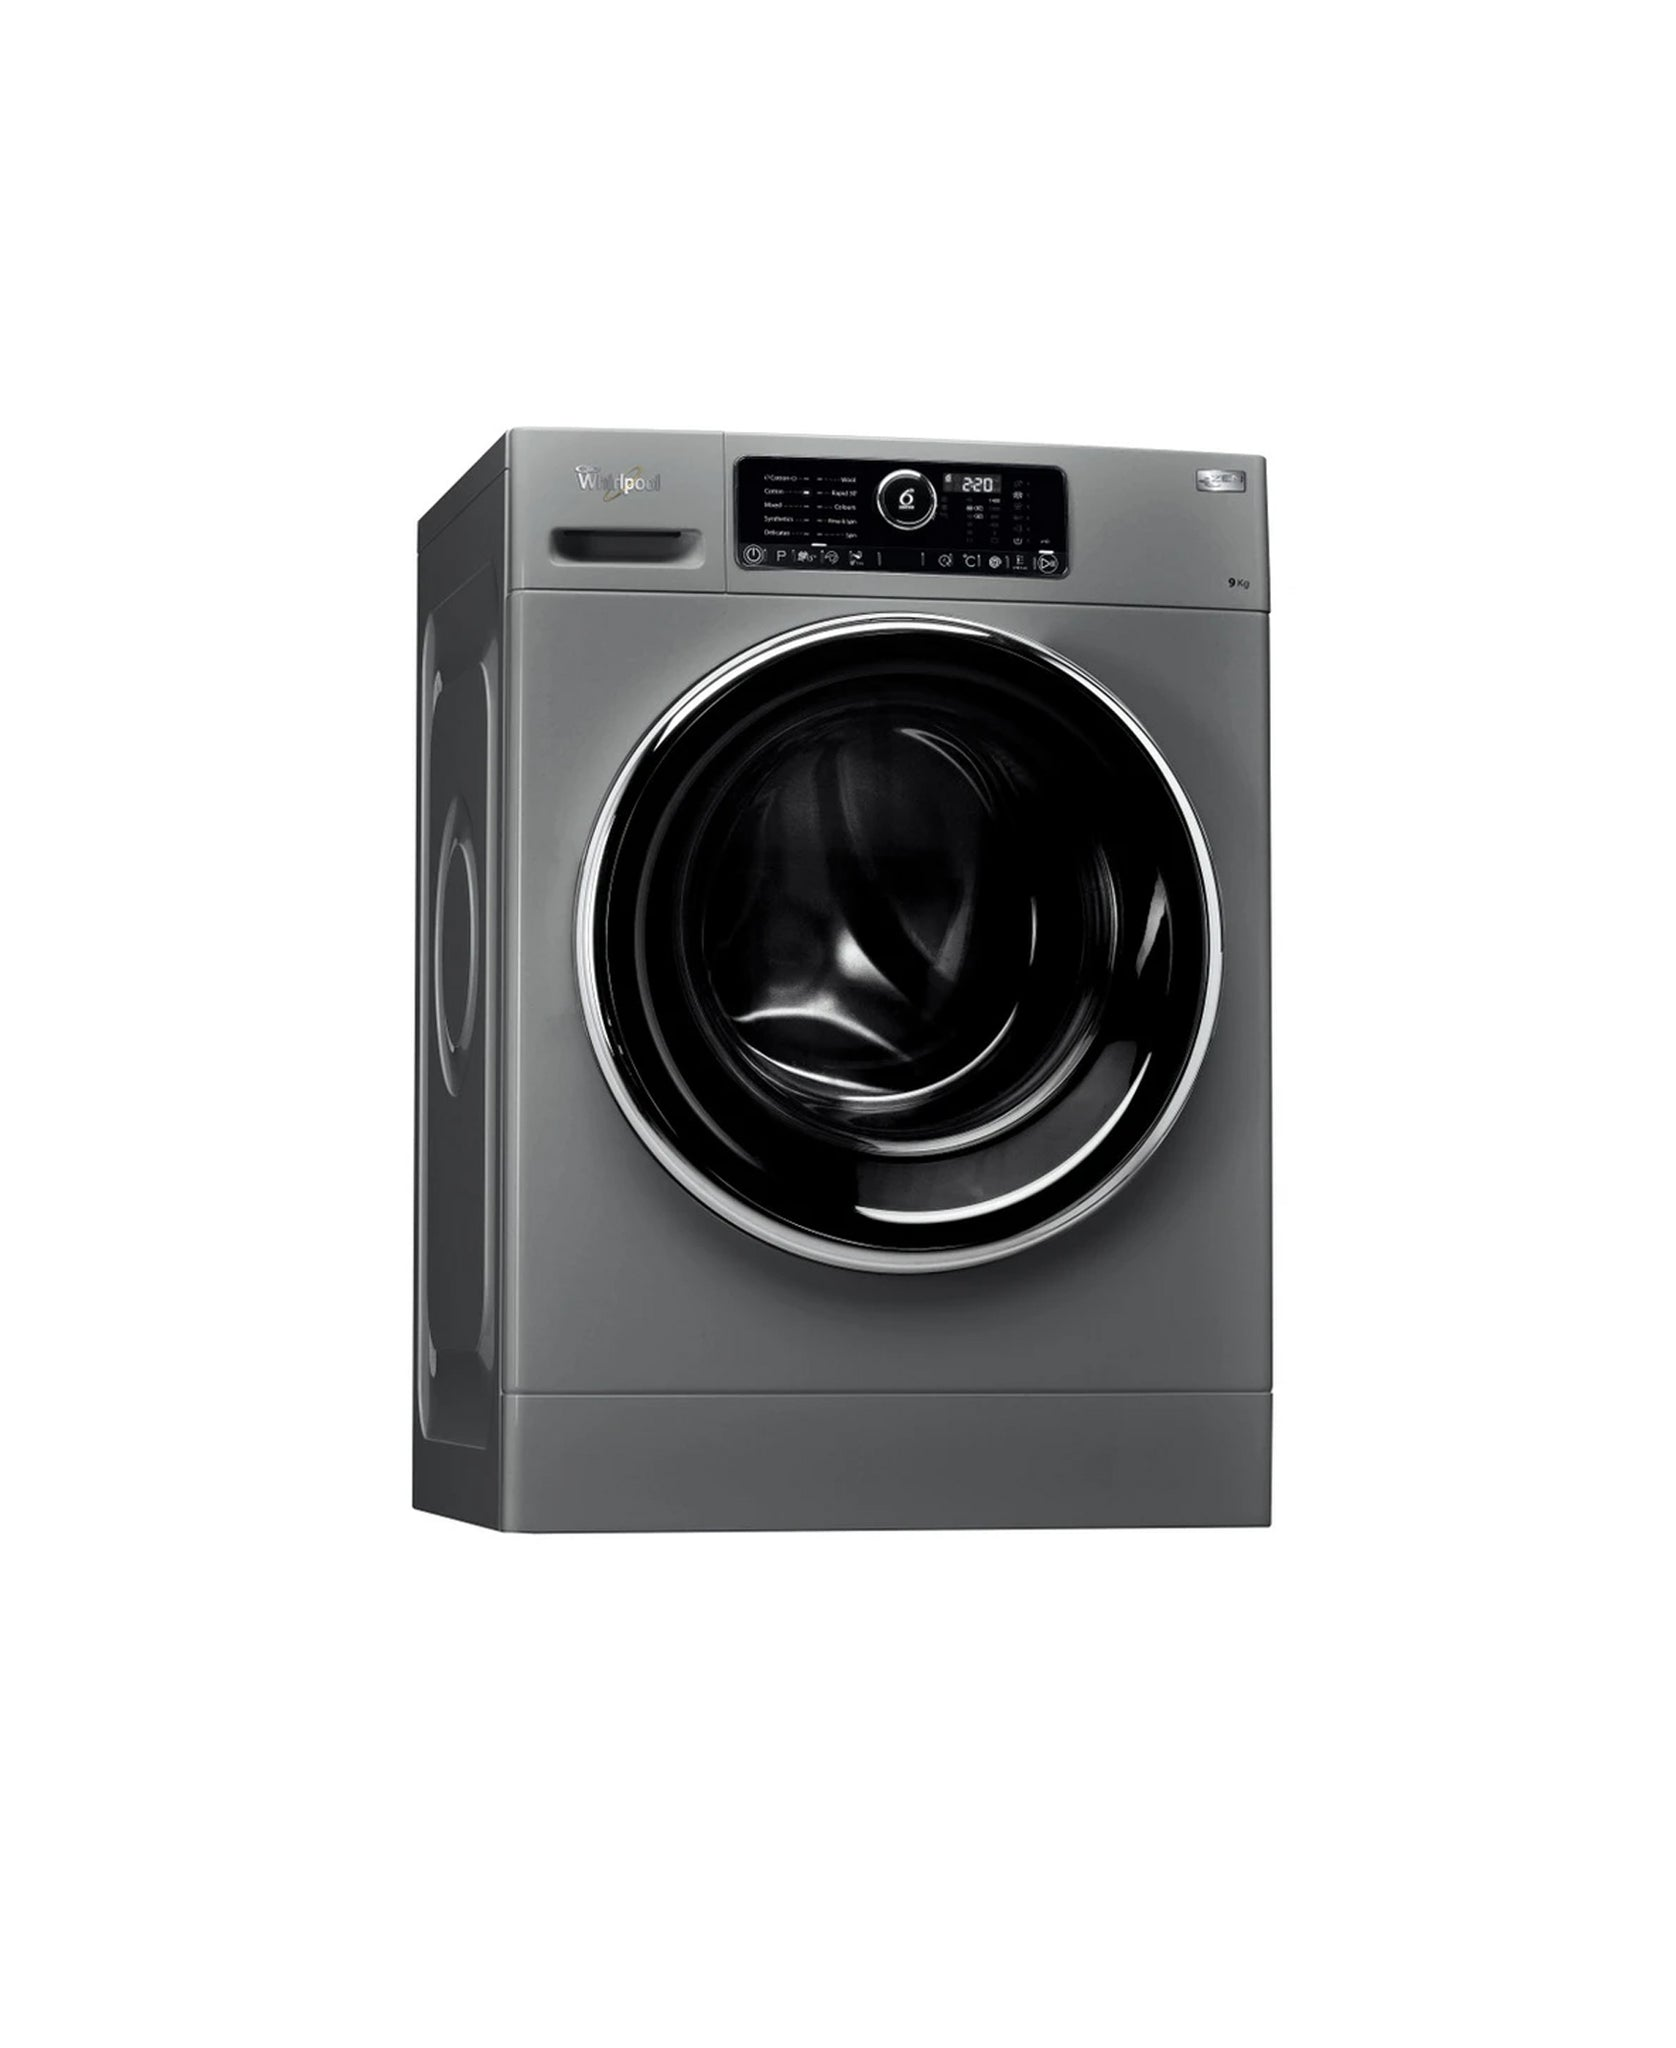 Whirlpool freestanding front loading washing machine: 9kg - FSCR 90426